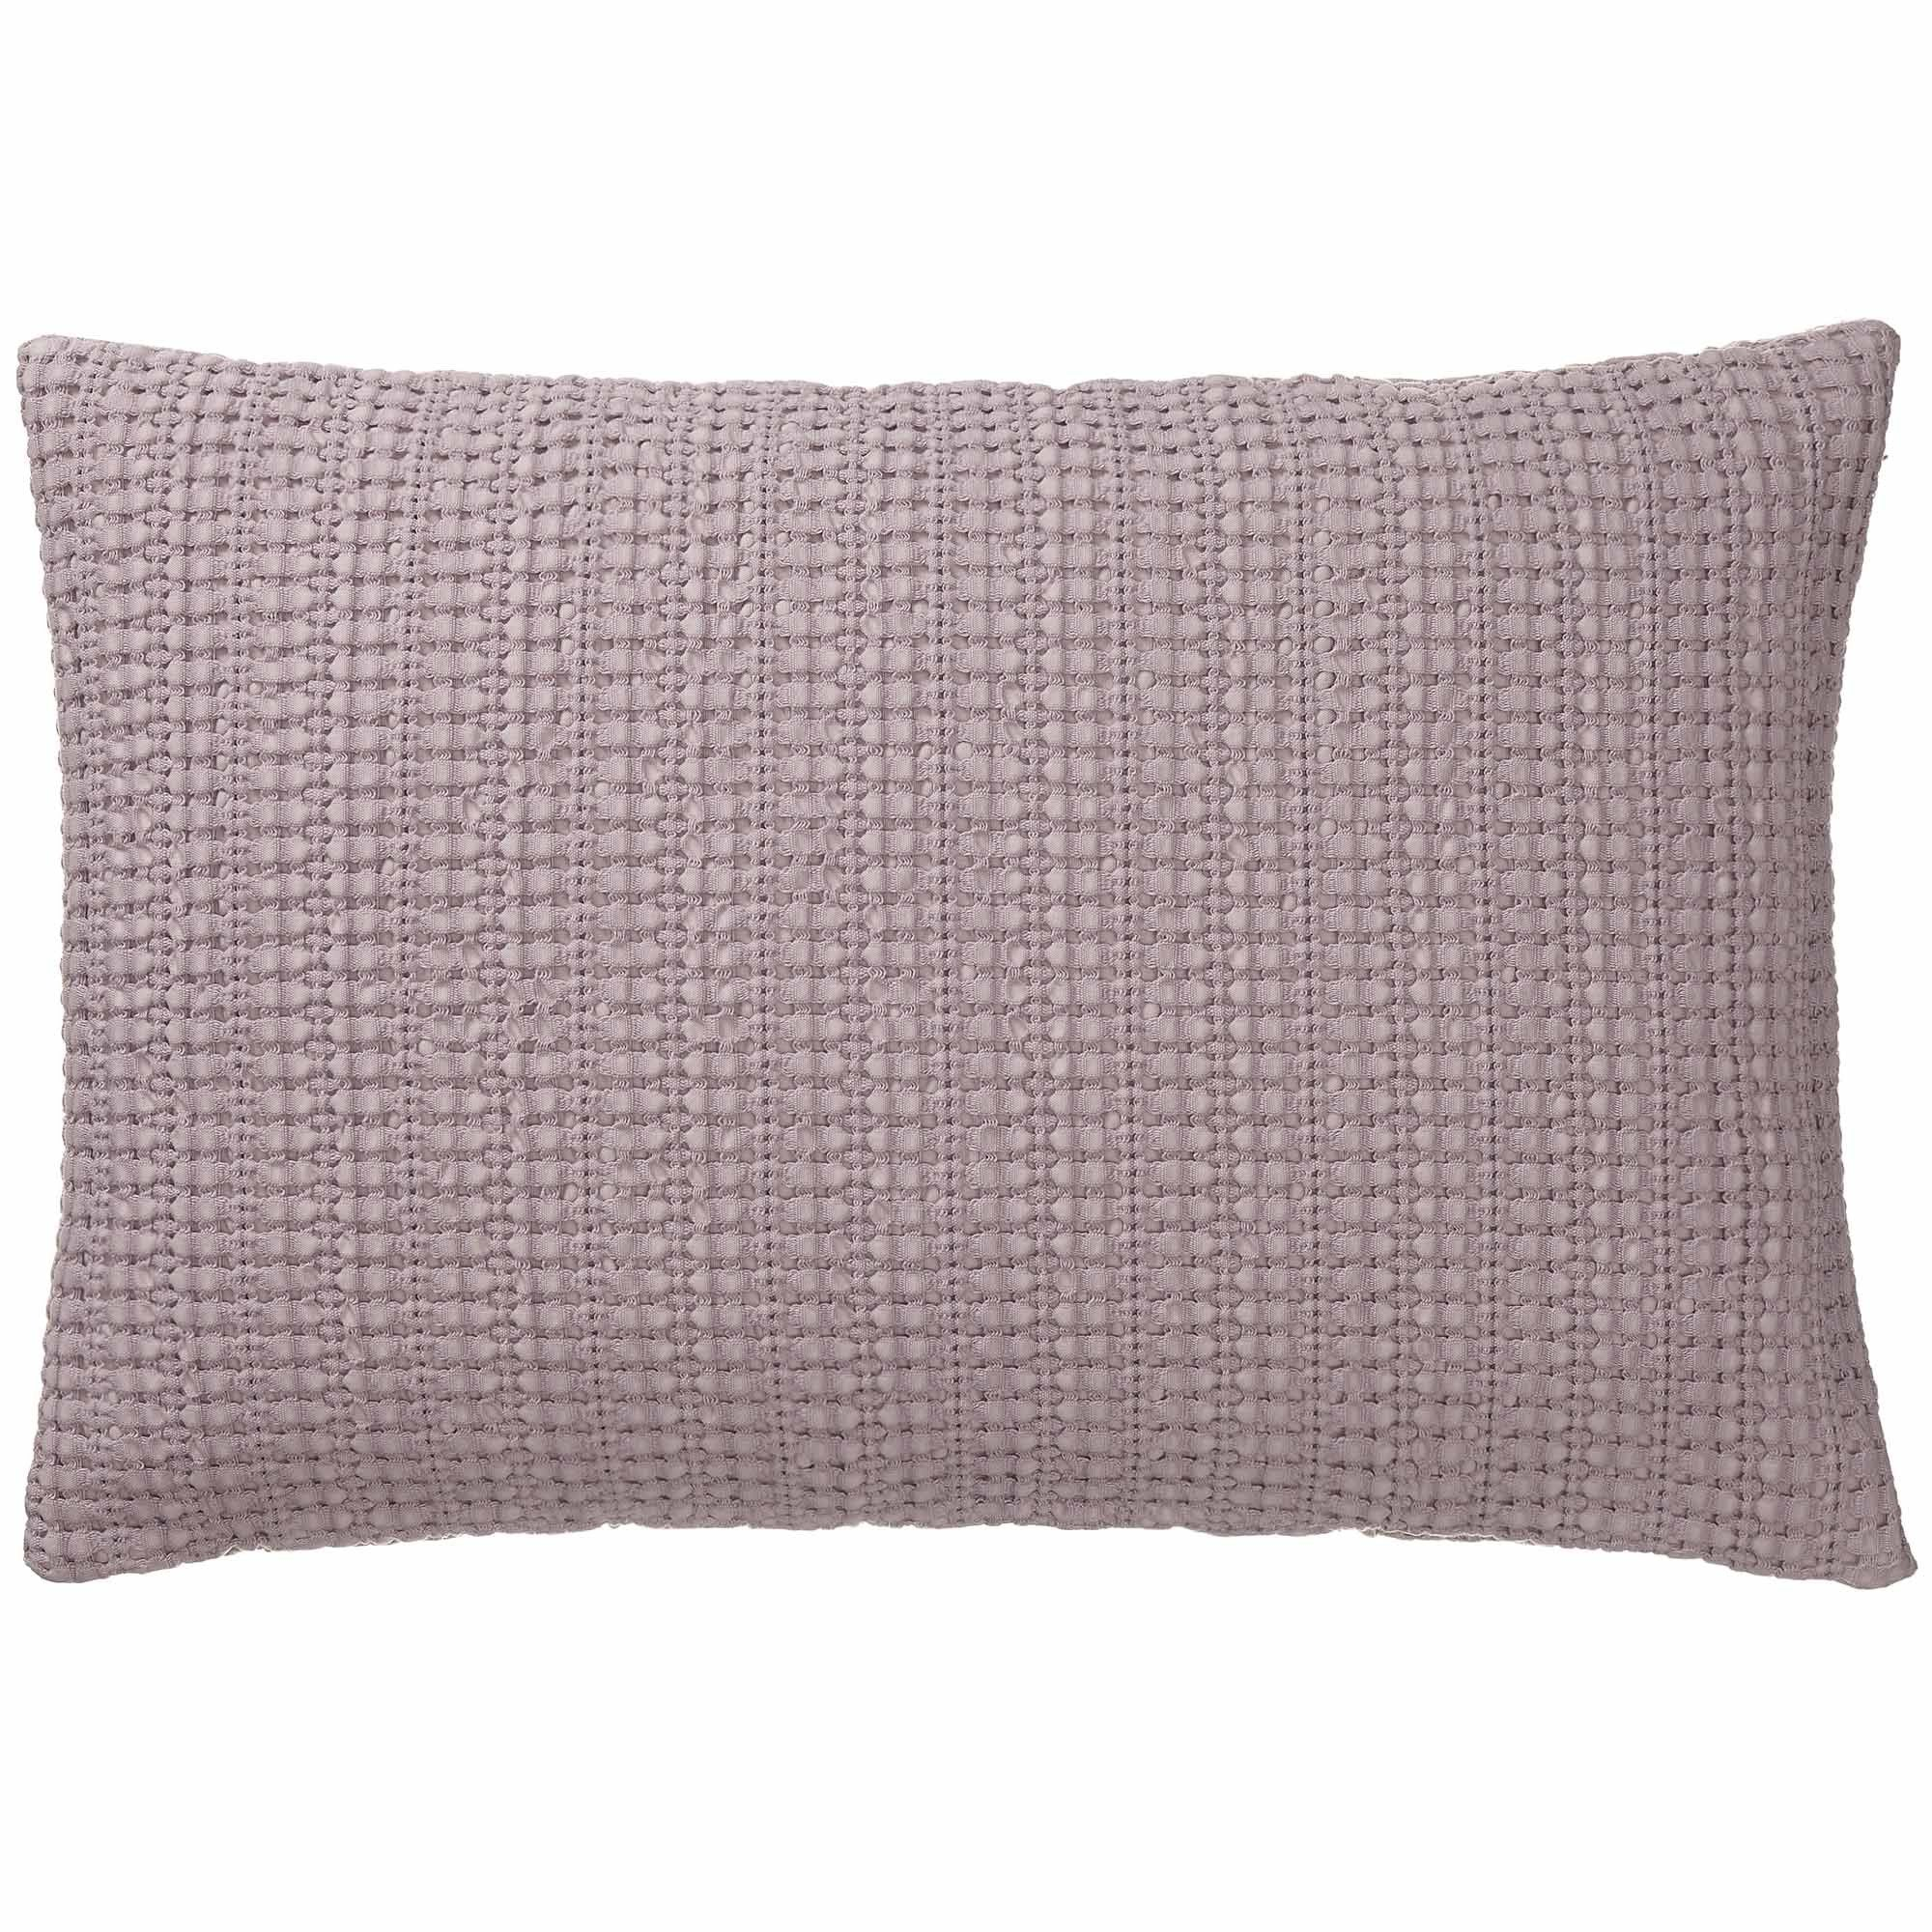 Anadia cushion cover, light mauve, 100% cotton